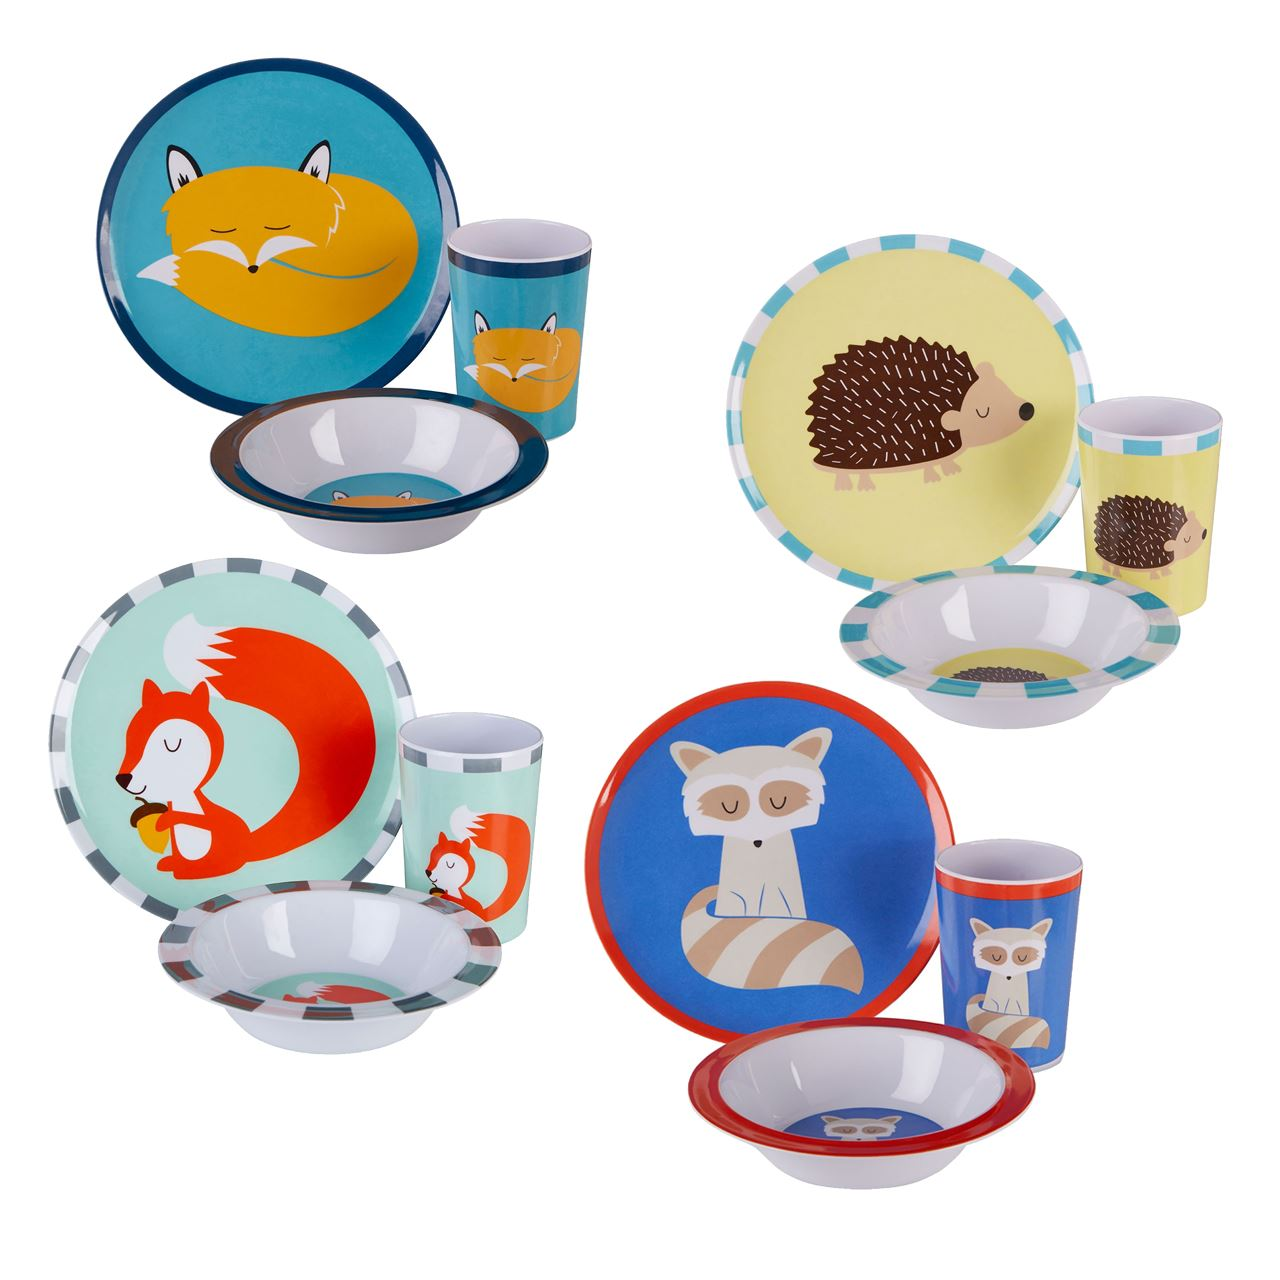 Fast Delivery  sc 1 st  eBay & Mimo Kids Dinner Set 3 Piece Scratch-resistant Plastic Plate Bowl ...